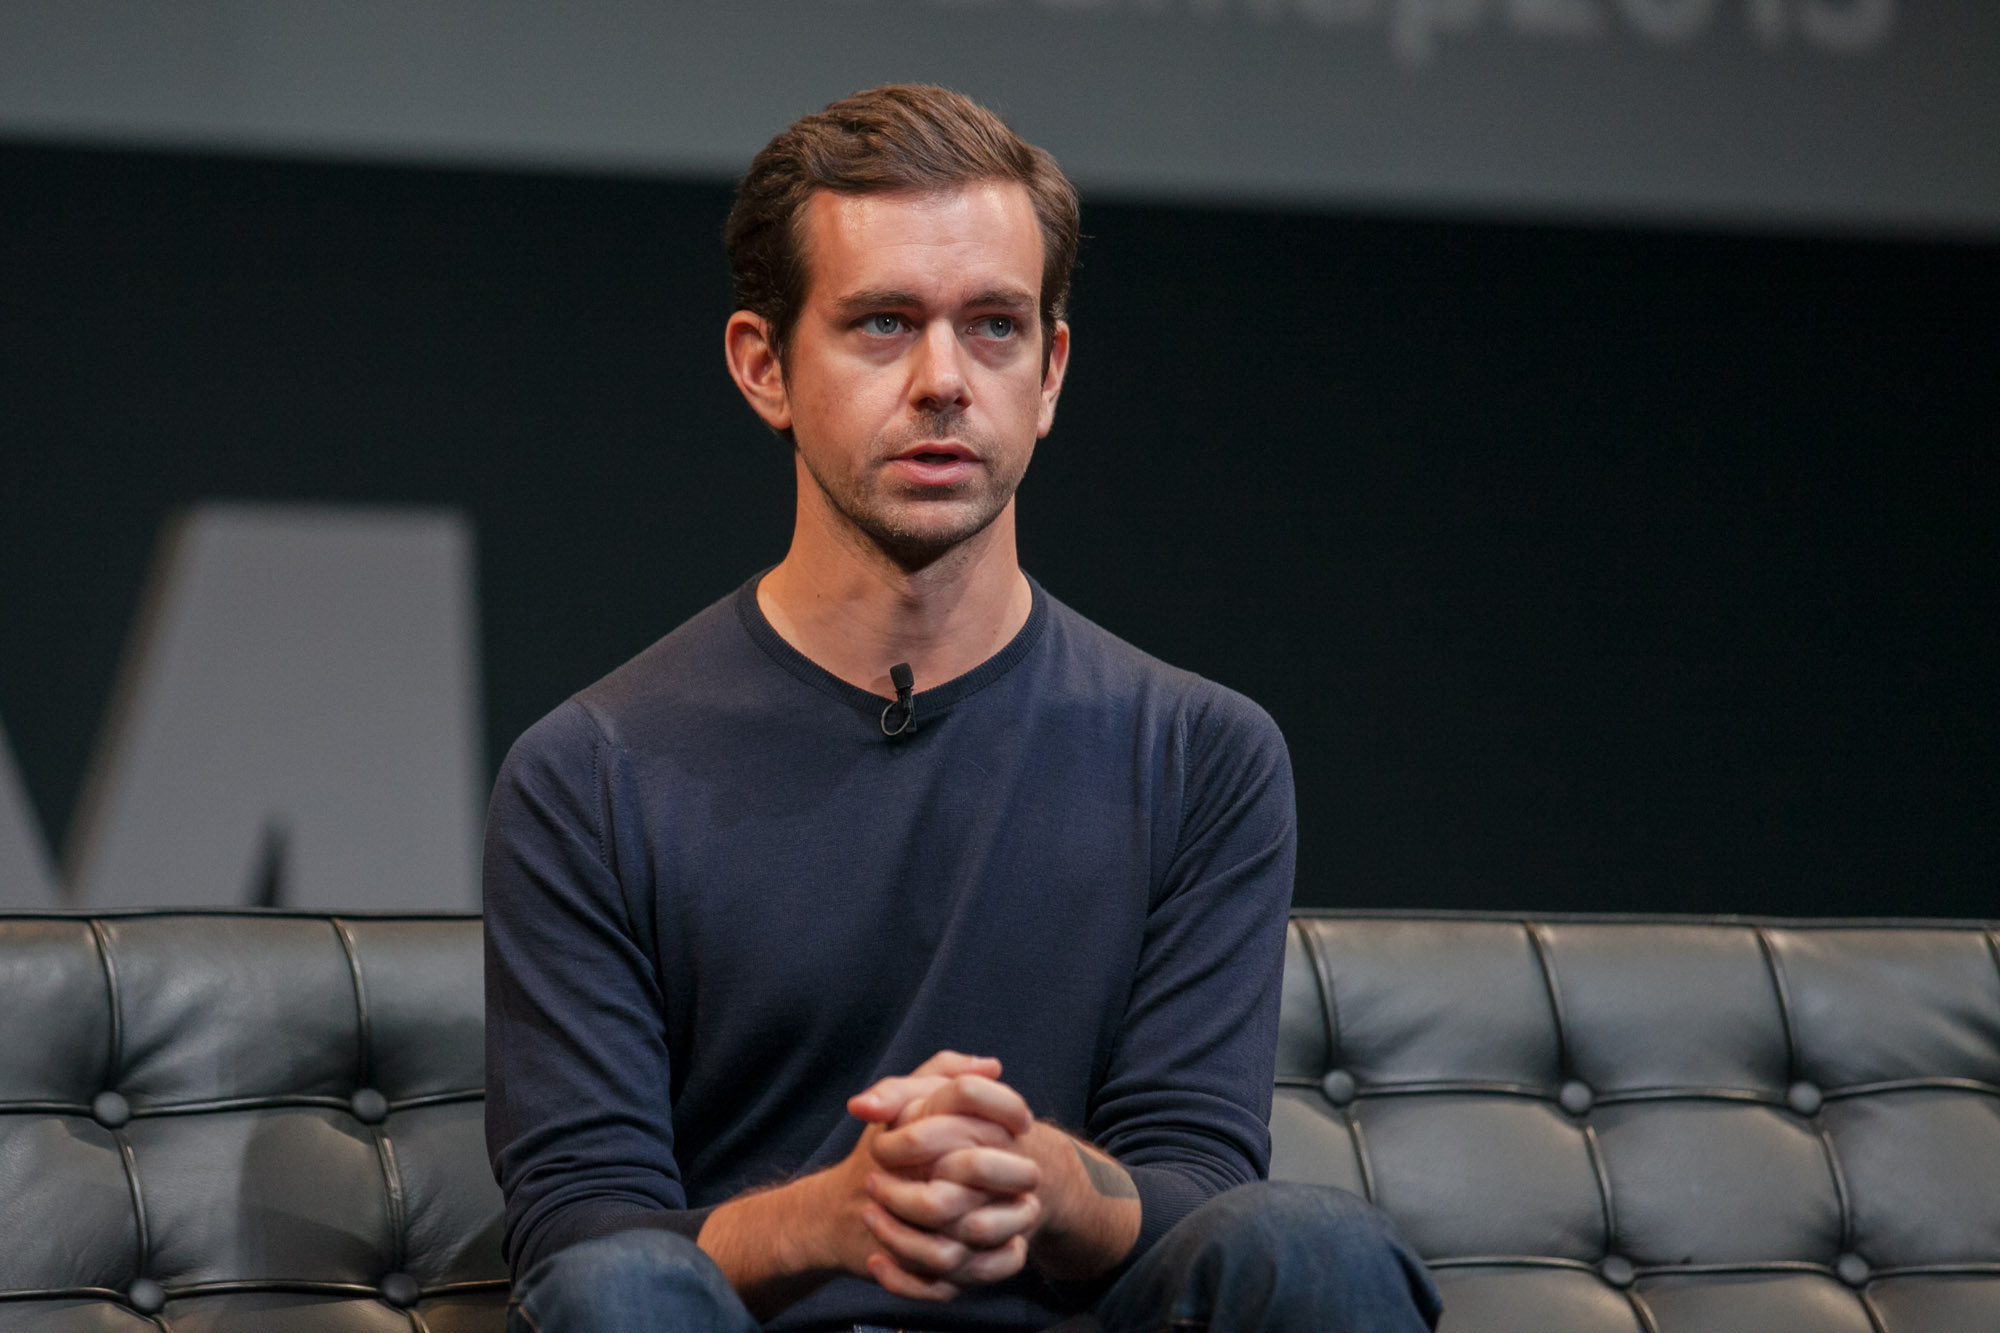 Square CEO Jack Dorsey says Bitcoin holds the keys to security